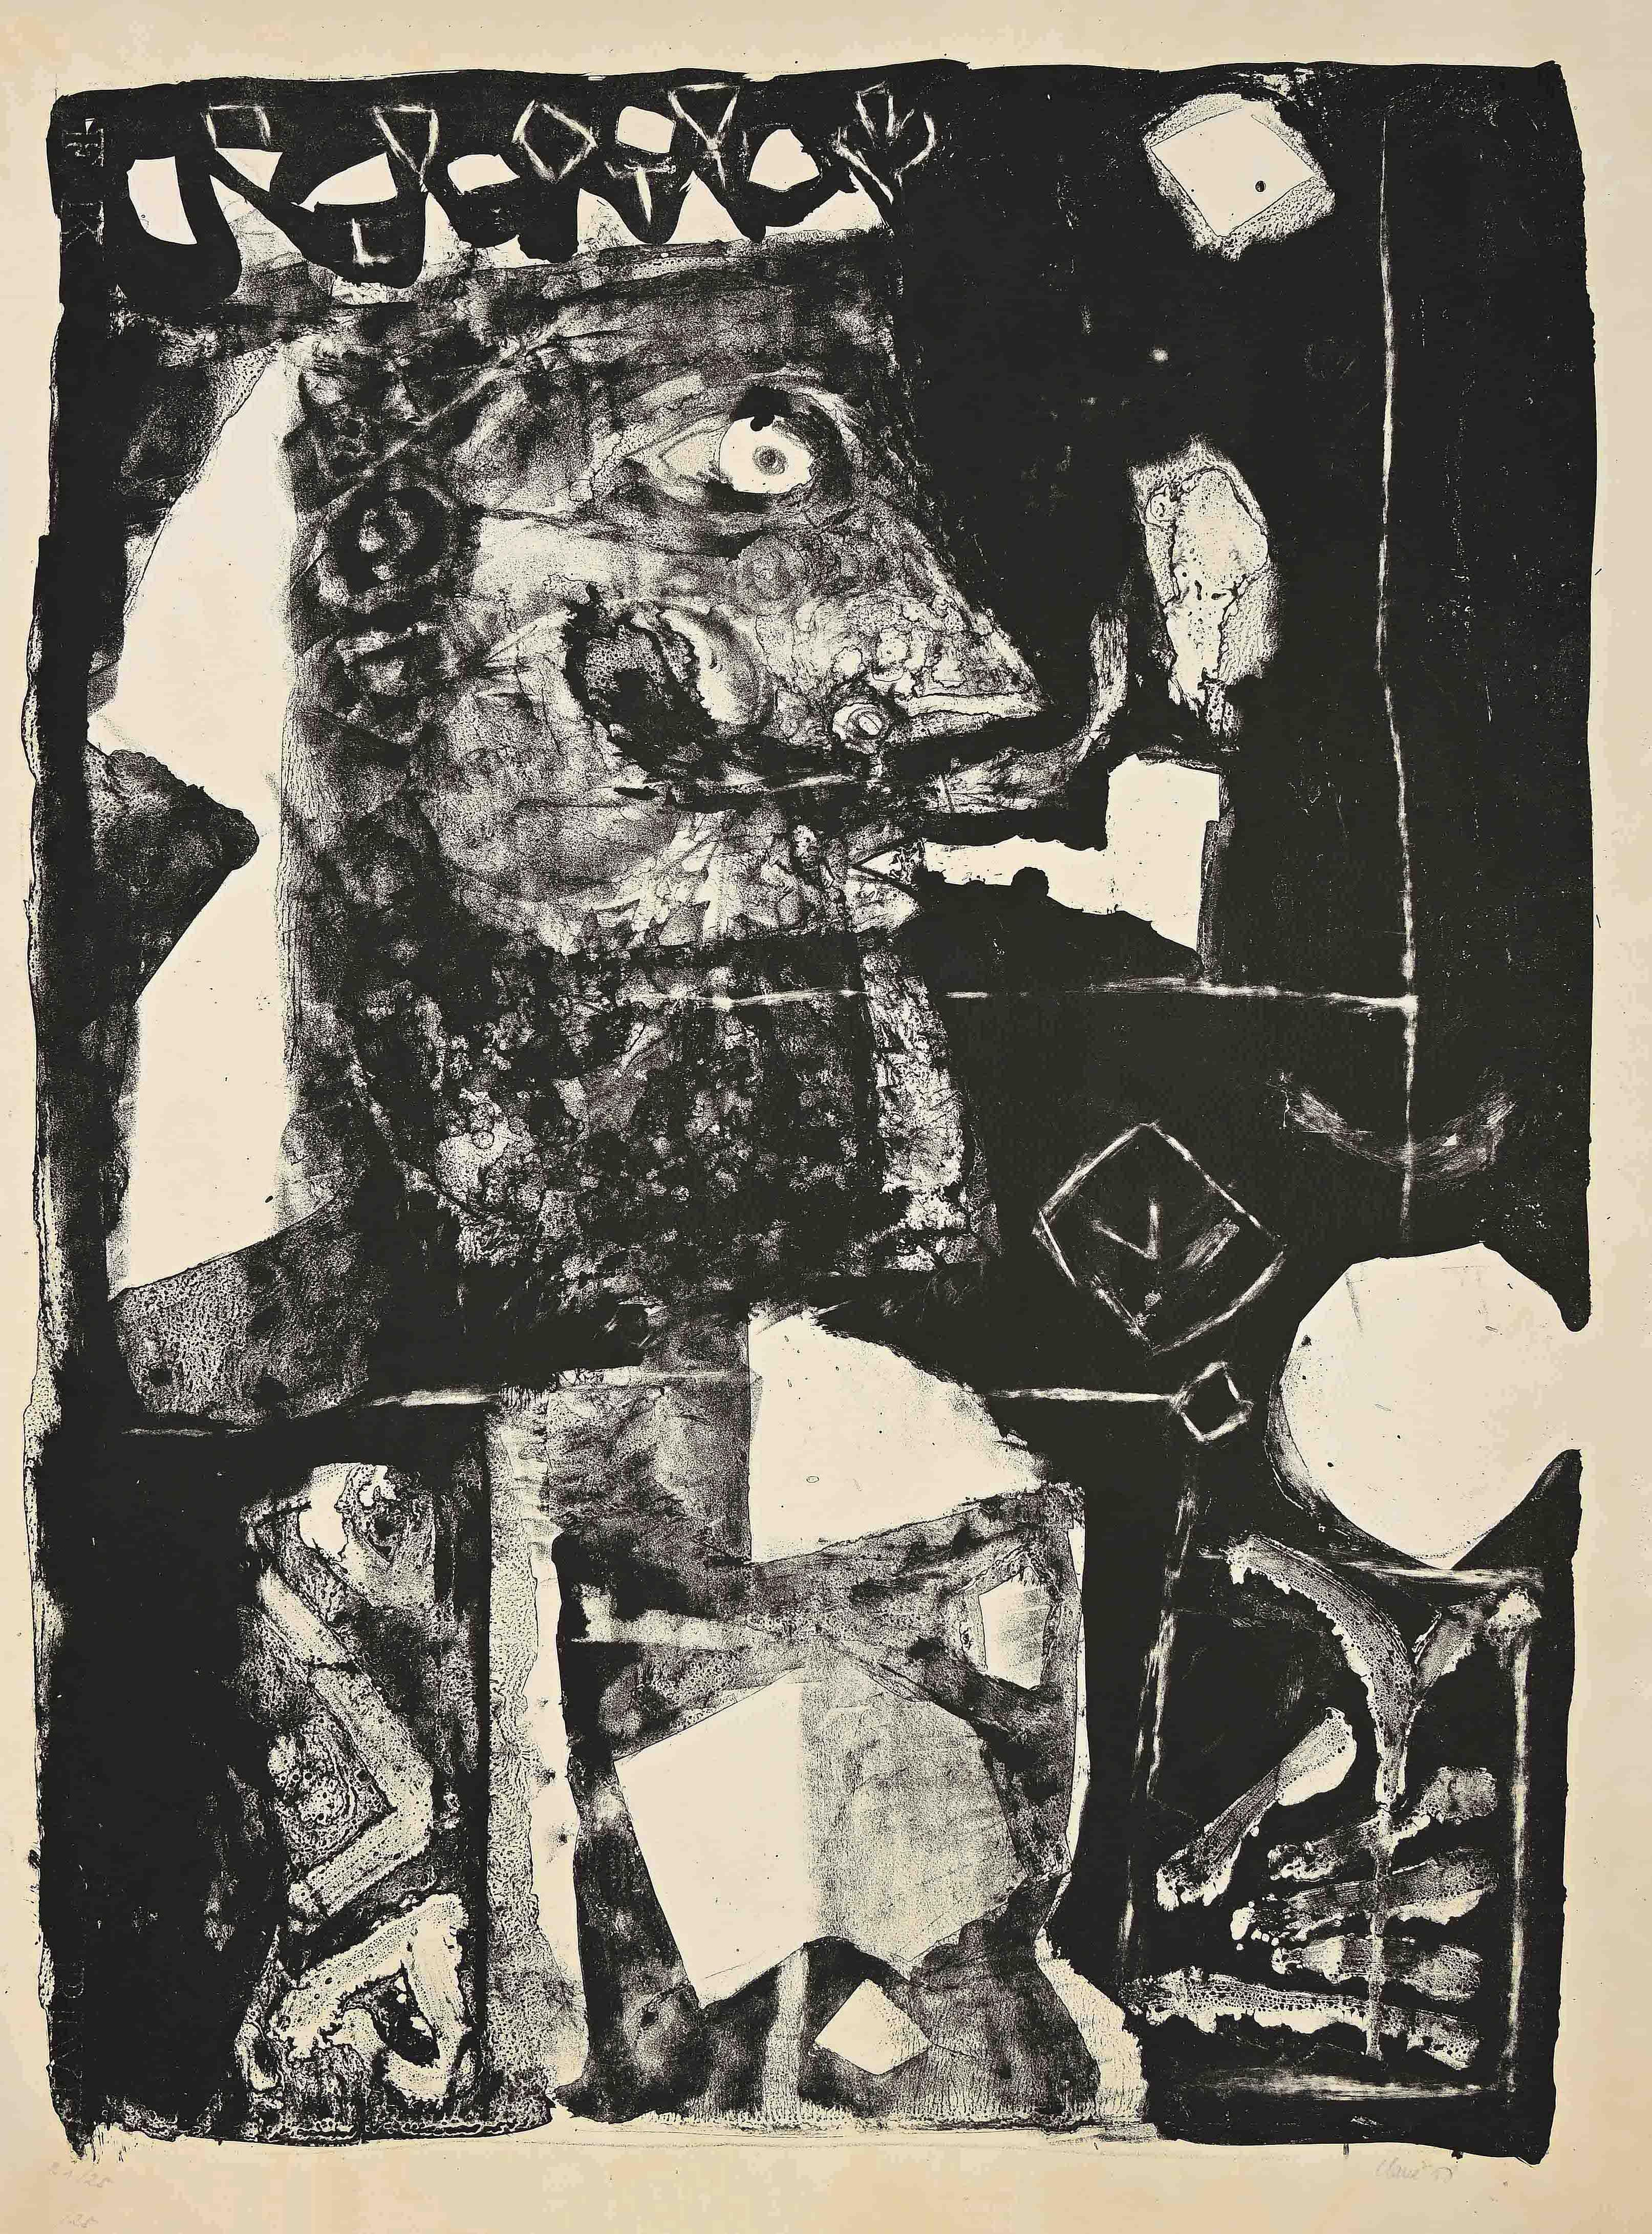 Man with pipe - Original Lithograph by A. Clavé - 1958